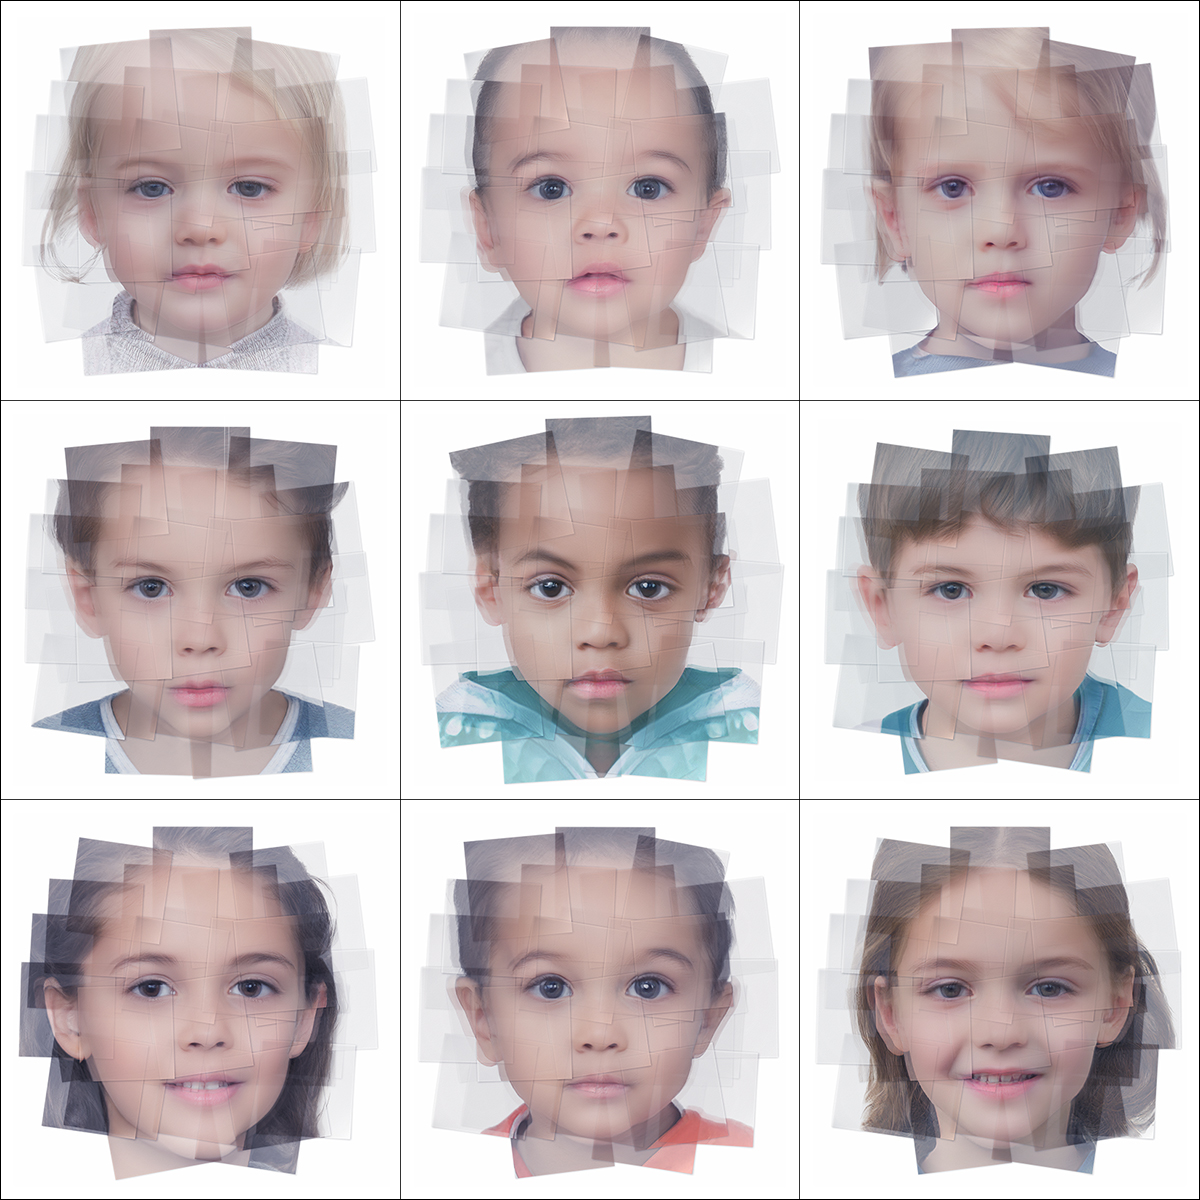 Generated Faces by Artificial Intelligence Kids 000 1 - 2019 - Generated Faces by Artificial Intelligence. Kids. V1